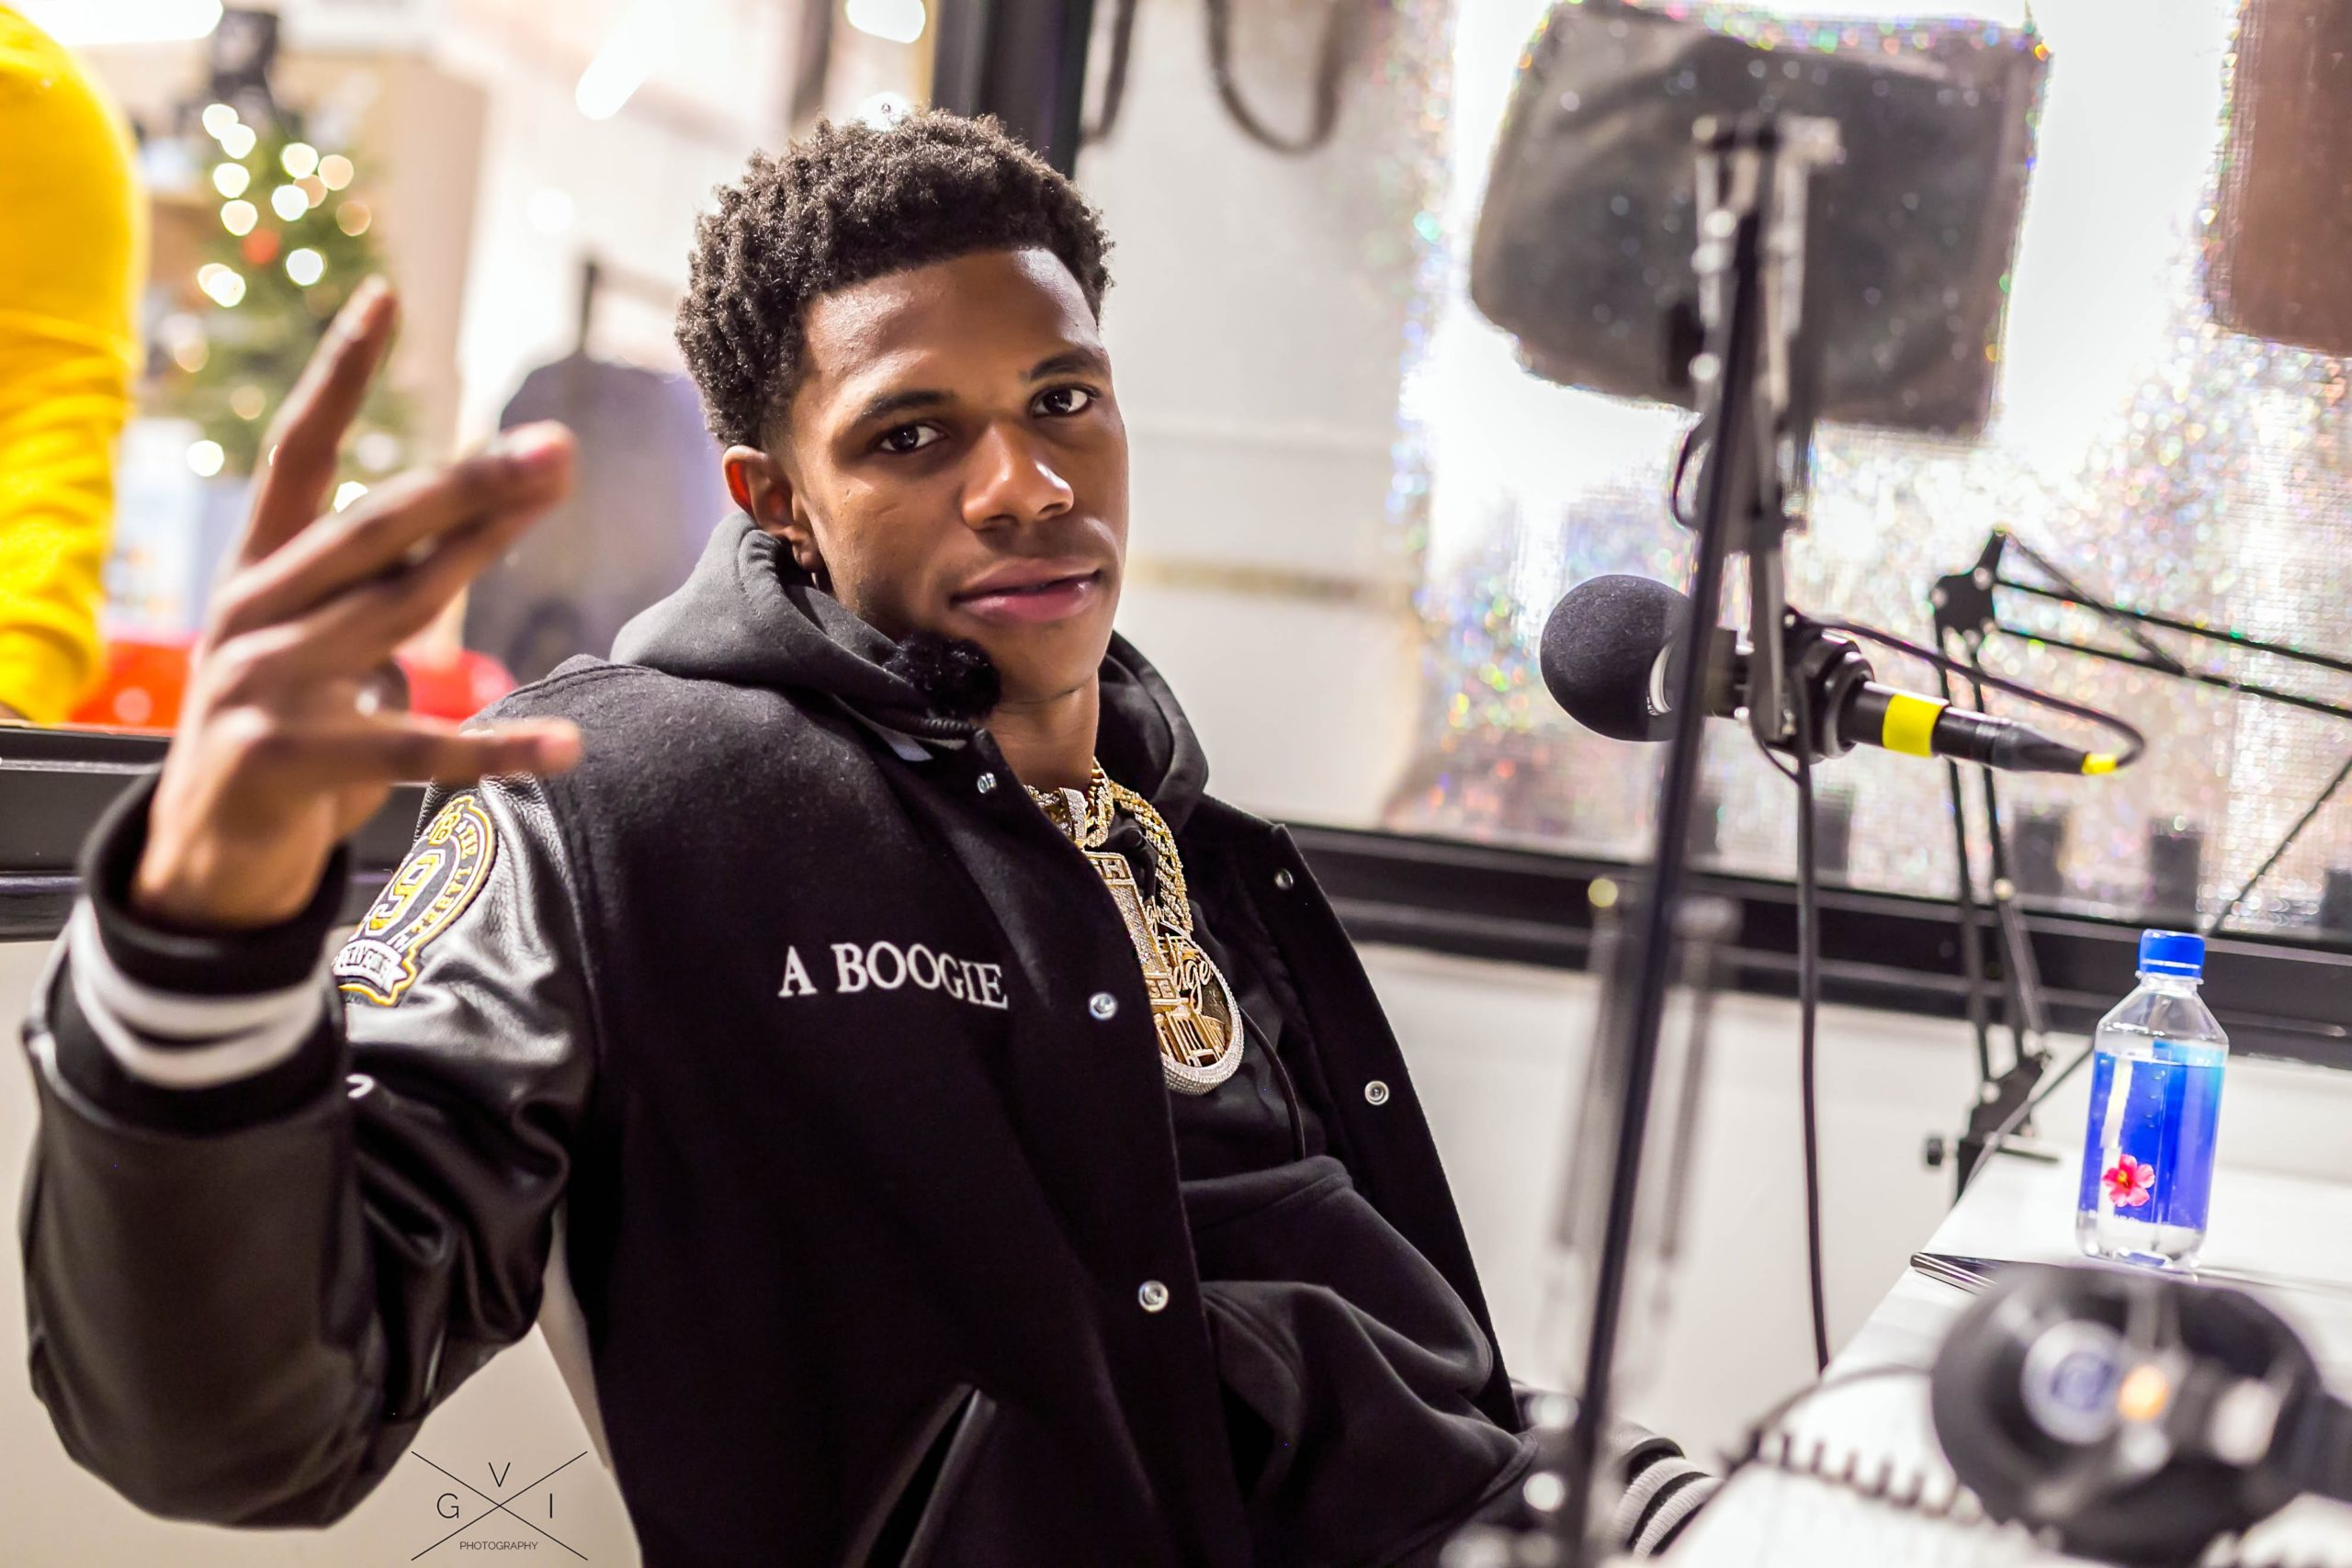 A Boogie Wit Da Hoodie Arrested On Gun Charges Following NJ Nightclub Shooting